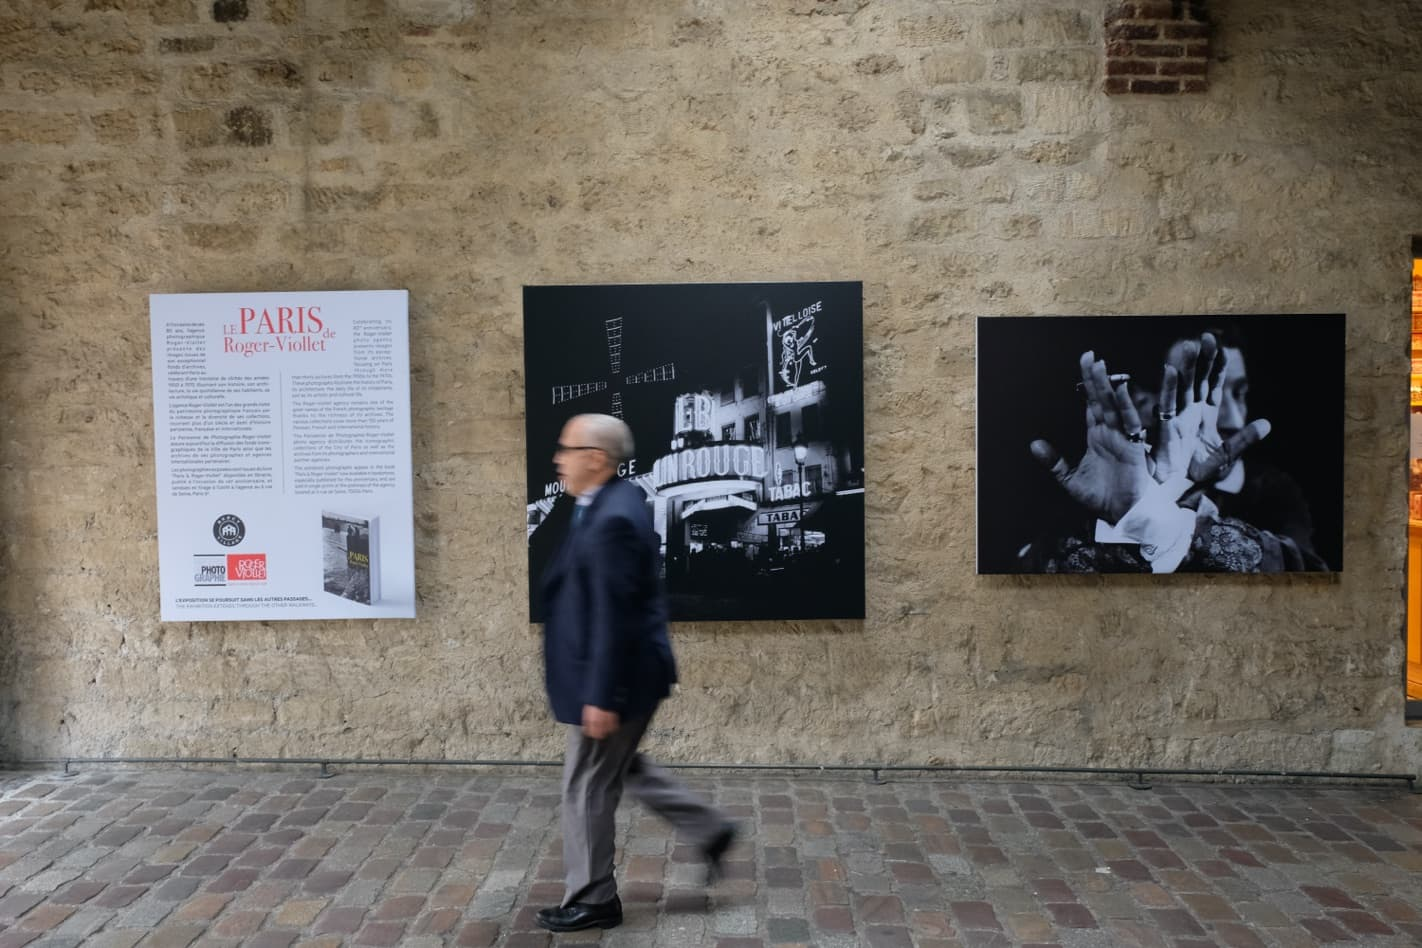 """Paris by Roger-Viollet"" at Bercy Village, Paris © Dominique Lecourt / Roger-Viollet"